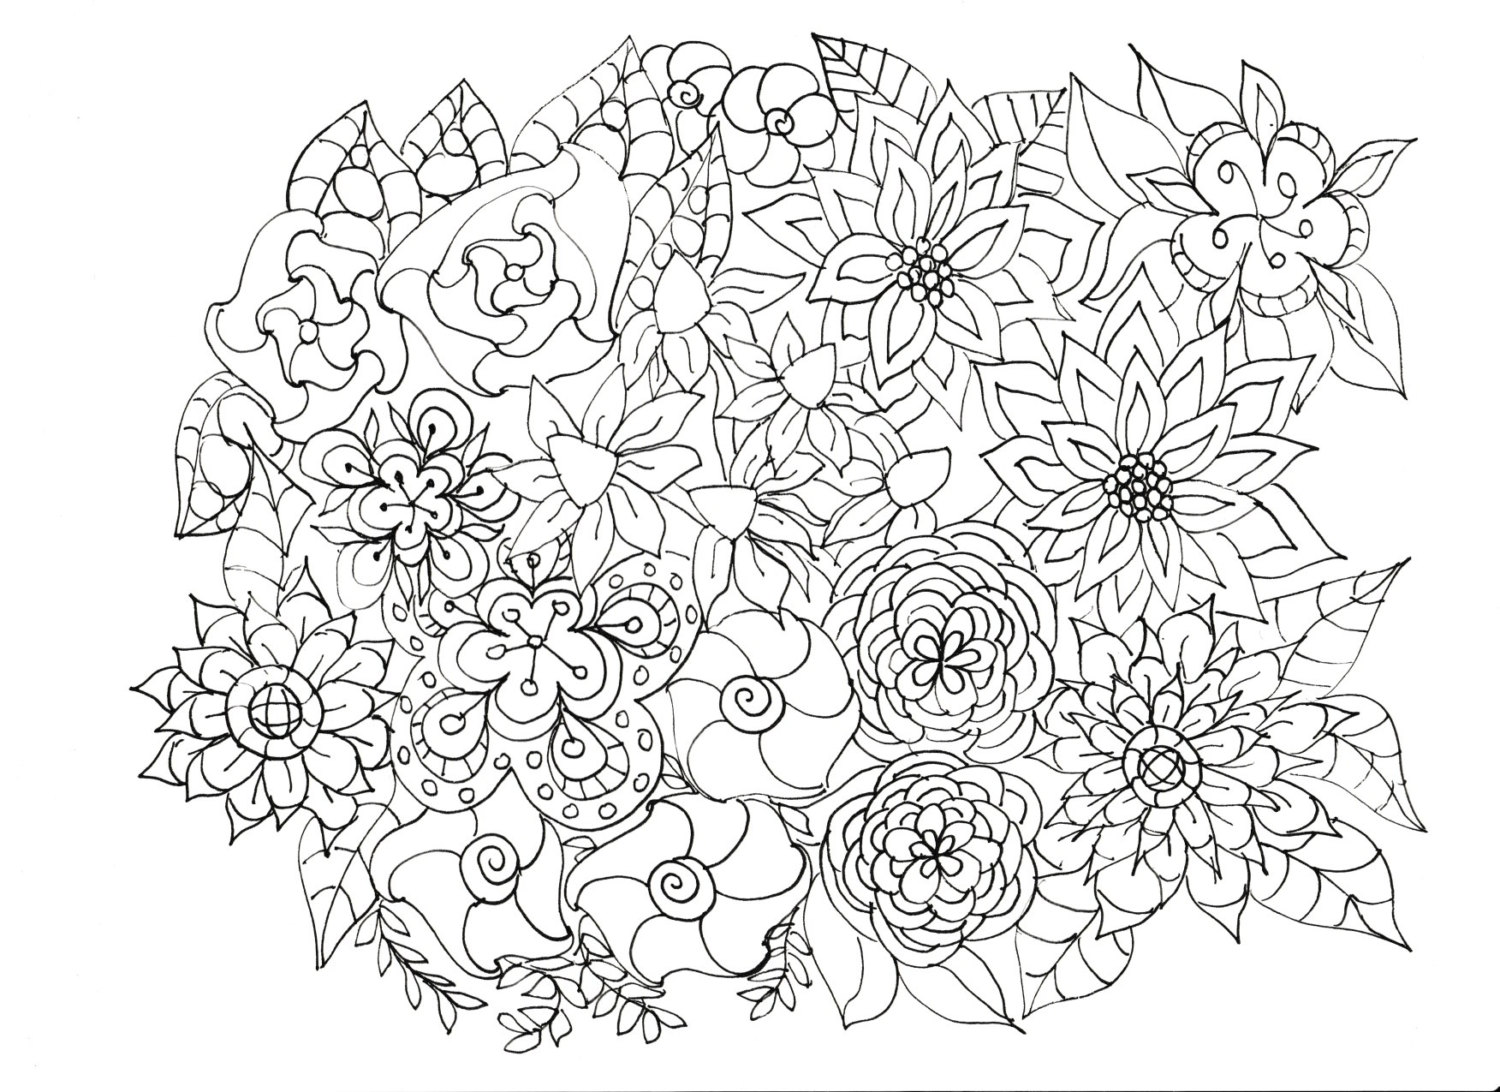 Flower Coloring Pages for Adults – coloring.rocks!